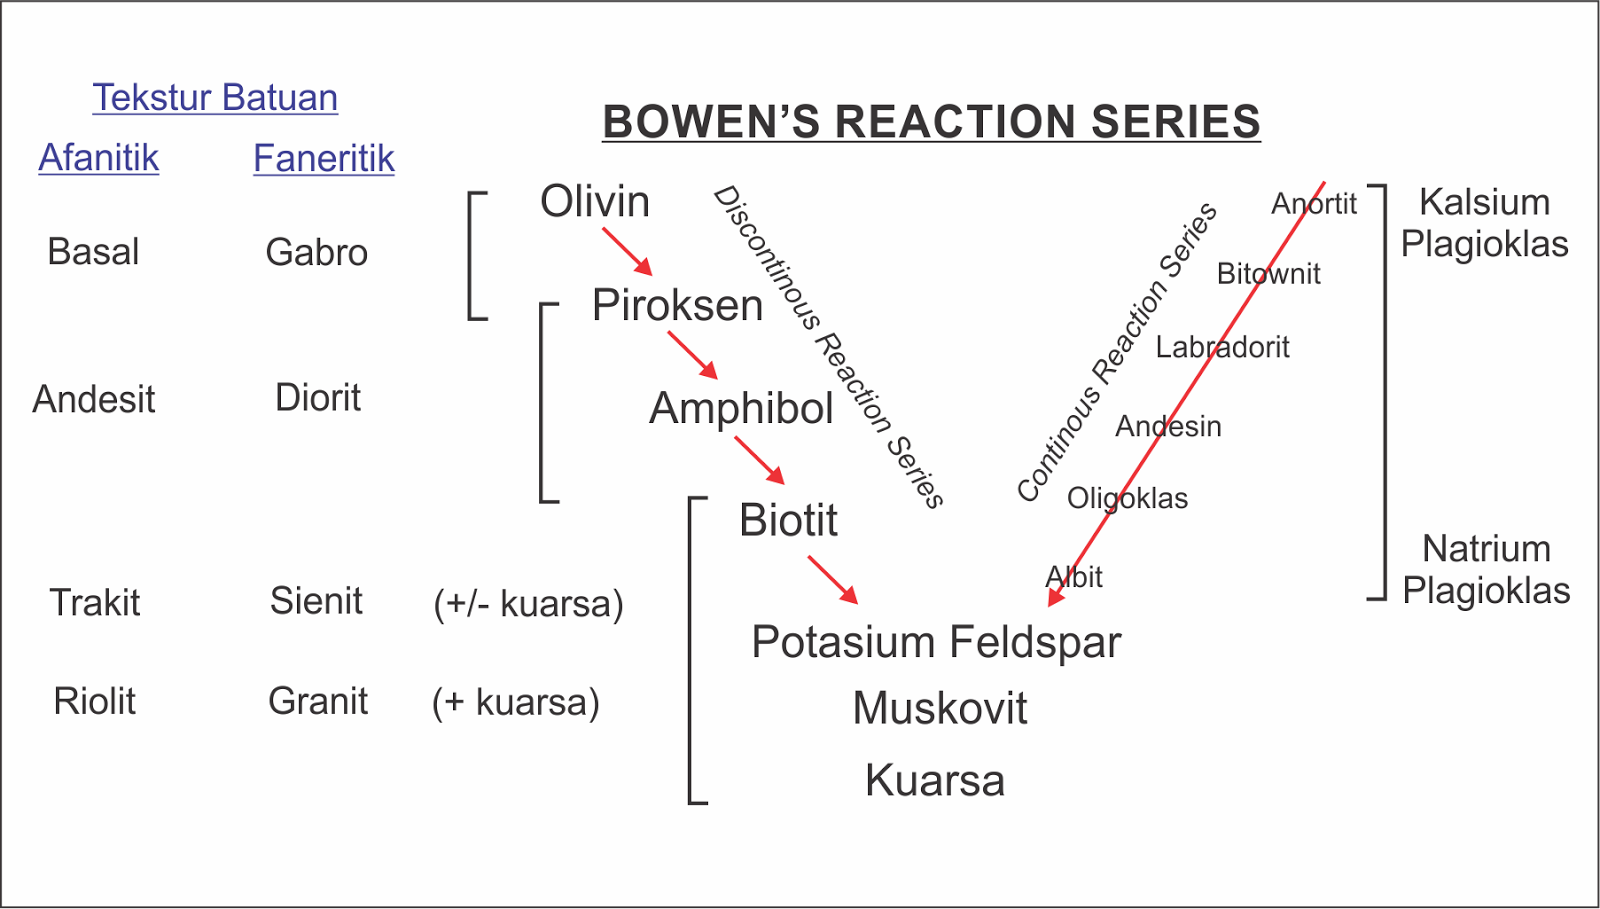 hight resolution of brs bowen s reaction series dasar ilmu dalam studi batuan dan bowen reaction diagram